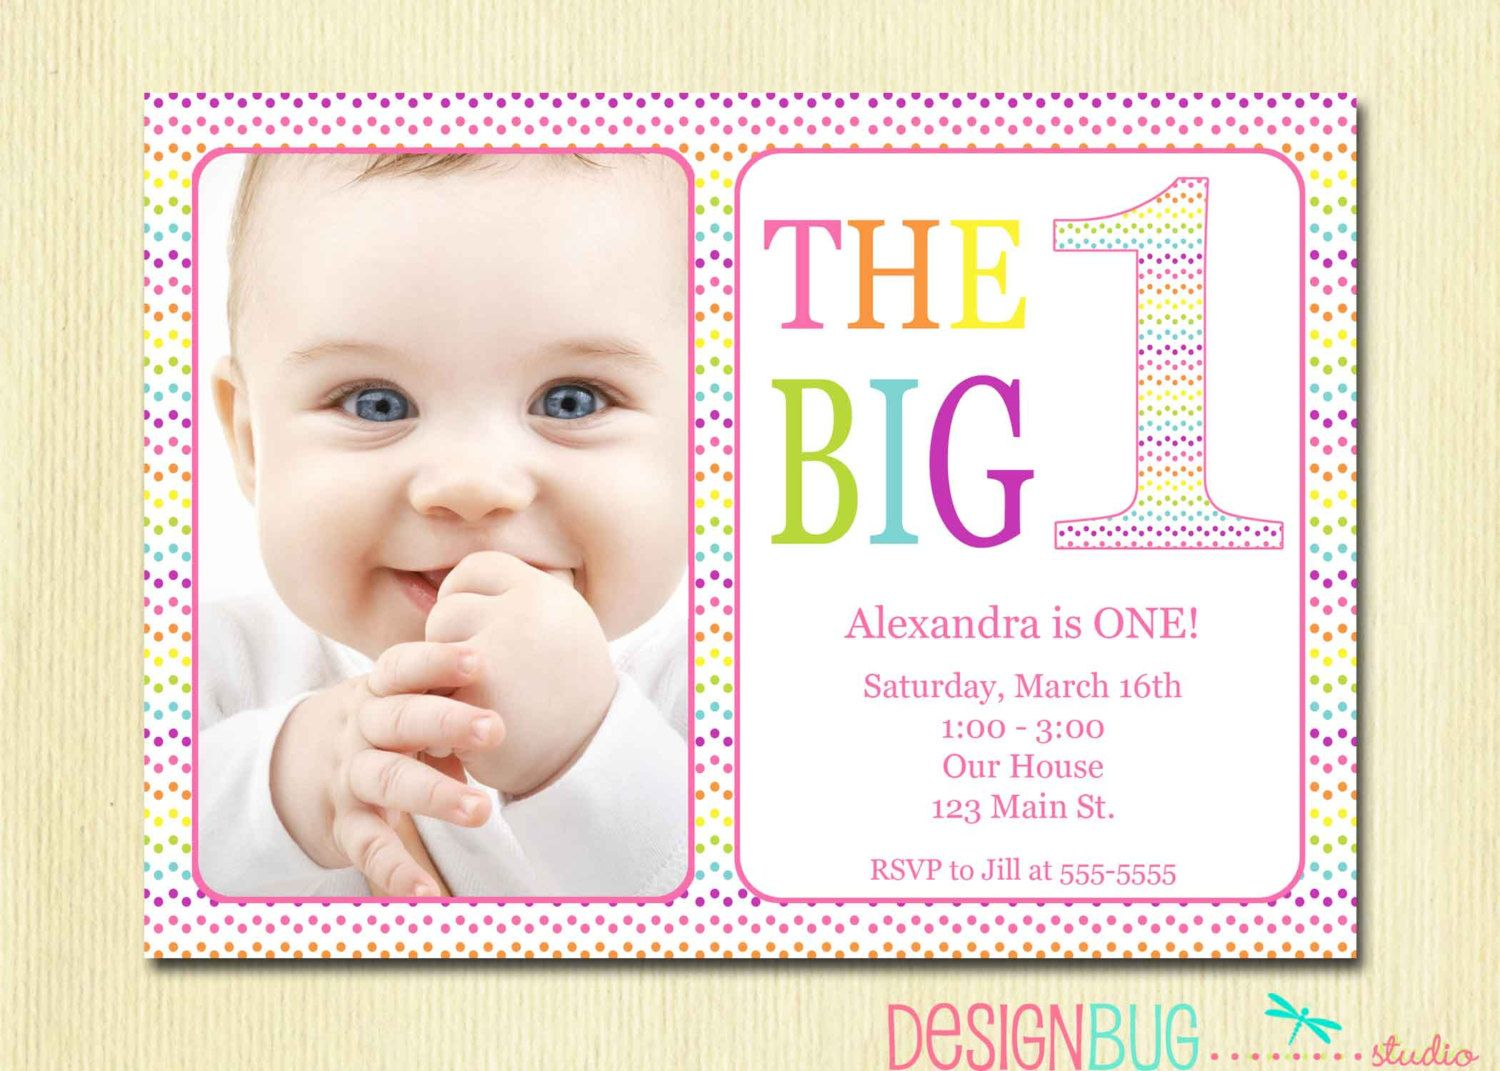 Rainbow First Birthday Invitation Baby Girl Diy Photo Printable Custom 1st Birthday Party Invitations 1st Birthday Invitations 1st Birthday Invitations Girl